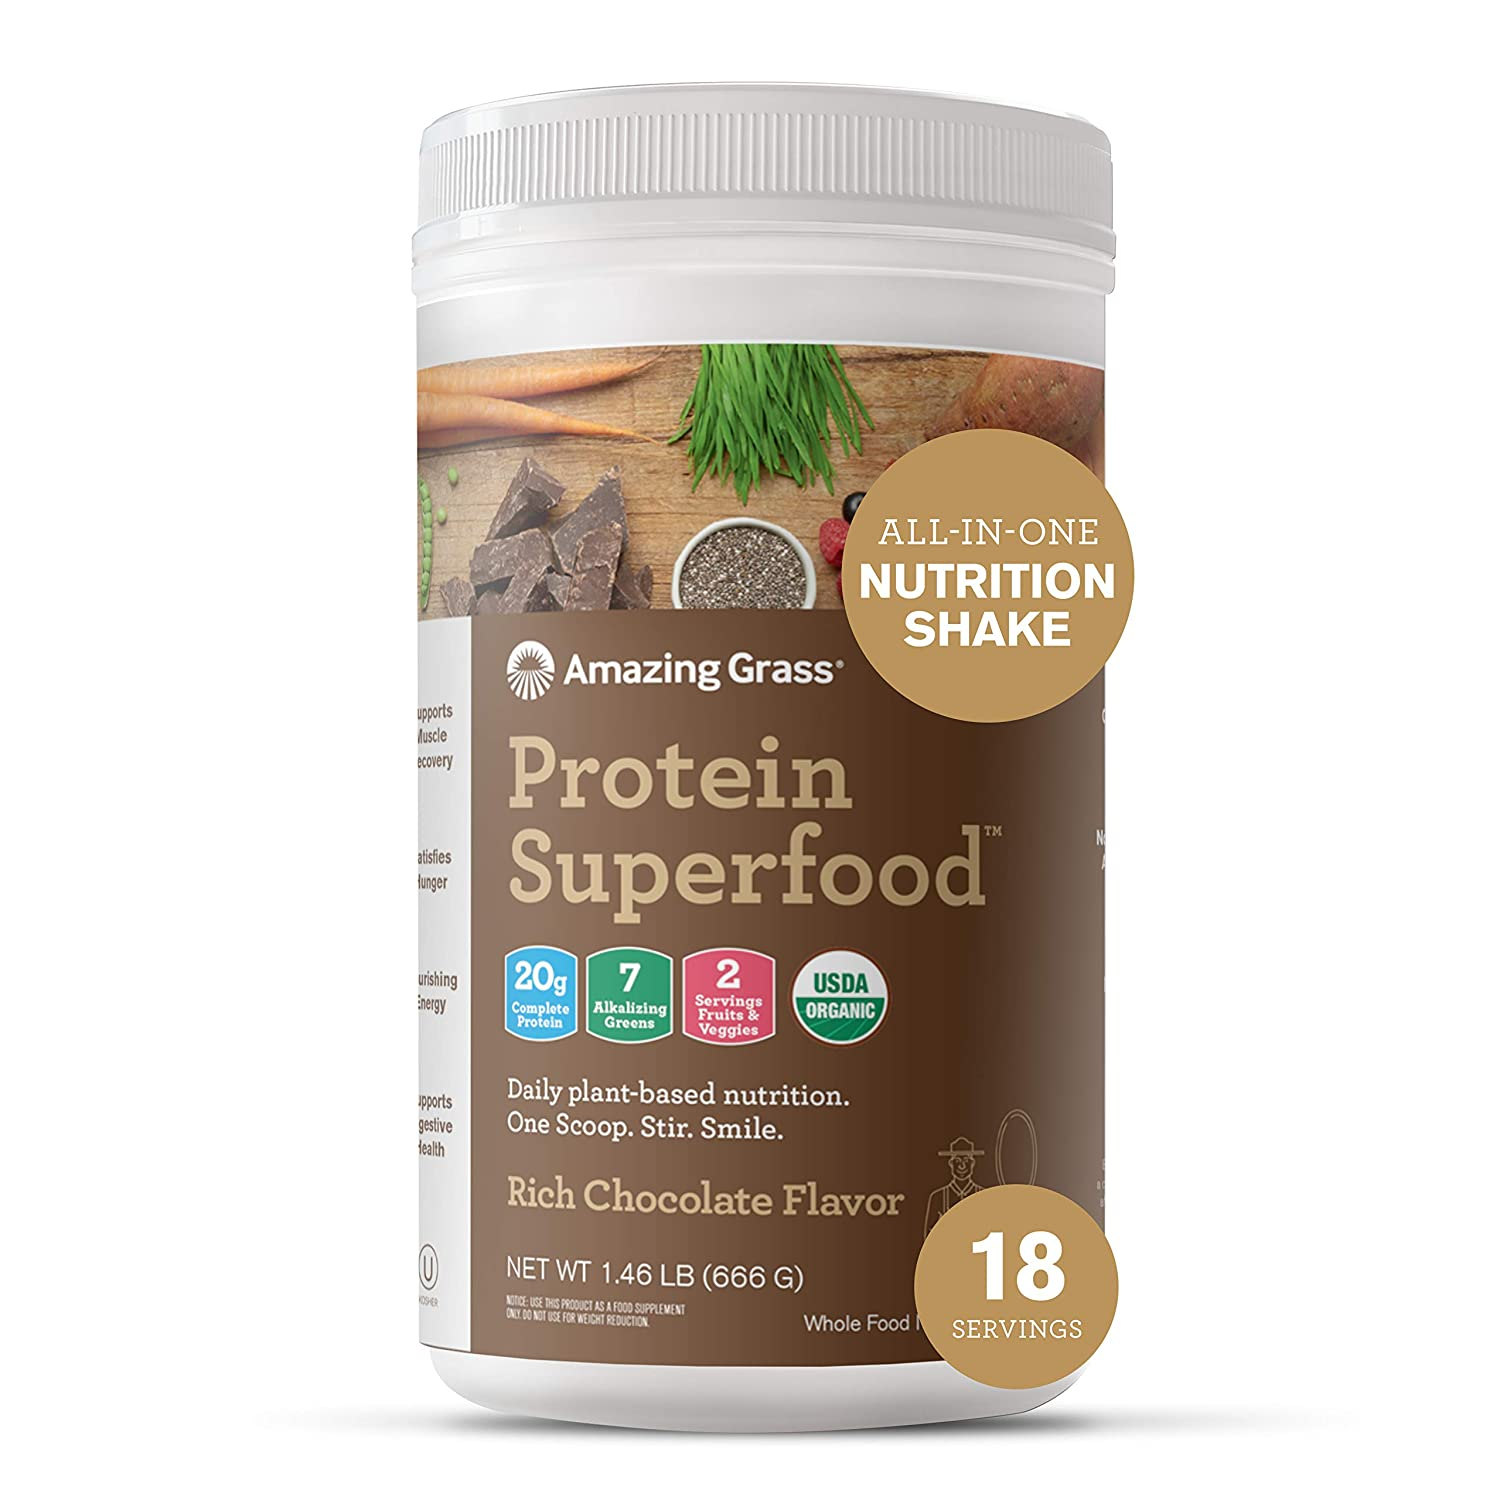 Amazing Grass Protein Superfood: Vegan Protein Powder, All-in-One Nutrition Shake, Rich Chocolate, 18 Servings : Grocery & Gourmet Food